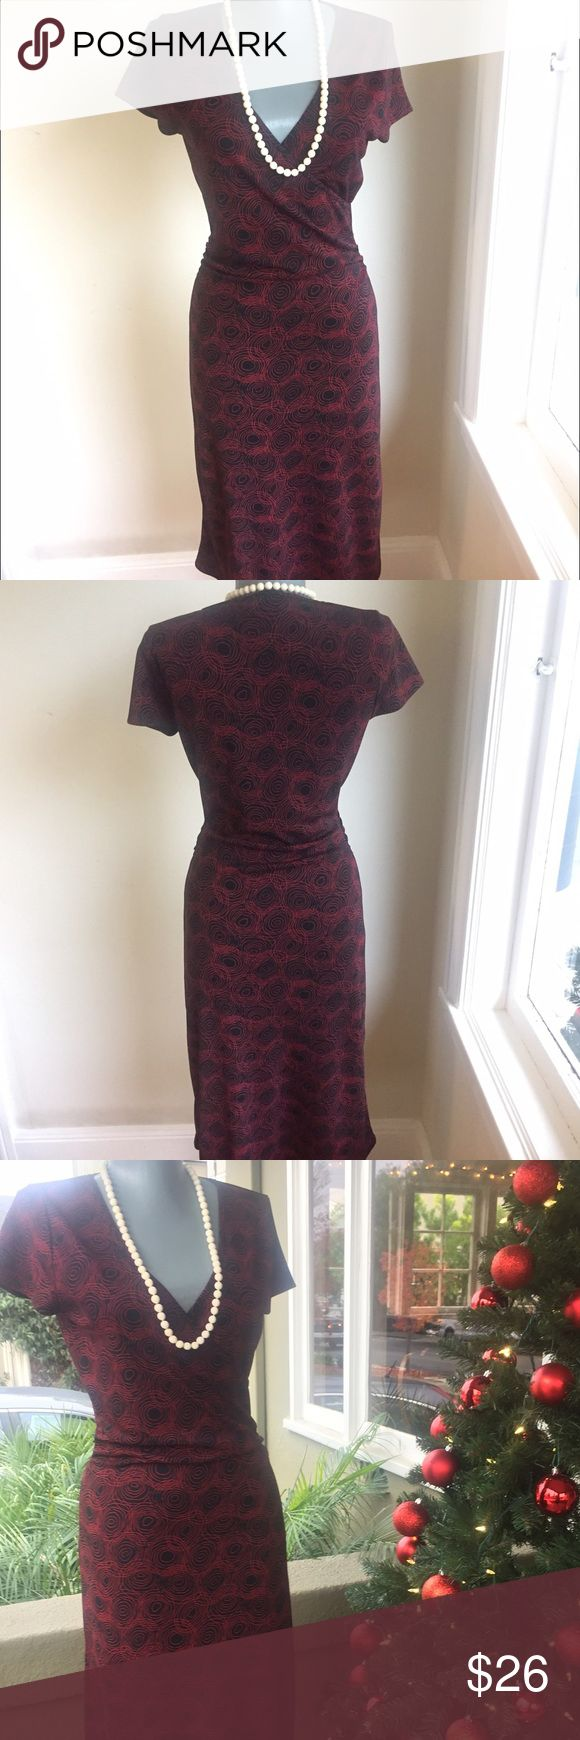 """❤Sale❤Chic. Nine West Red and Black Dress. Enough stretch to fabric to fit well.  Bust 34"""". Waist 26"""". Hips 35"""". Waist to hem 27"""". Gorgeous. Nine West Dresses"""